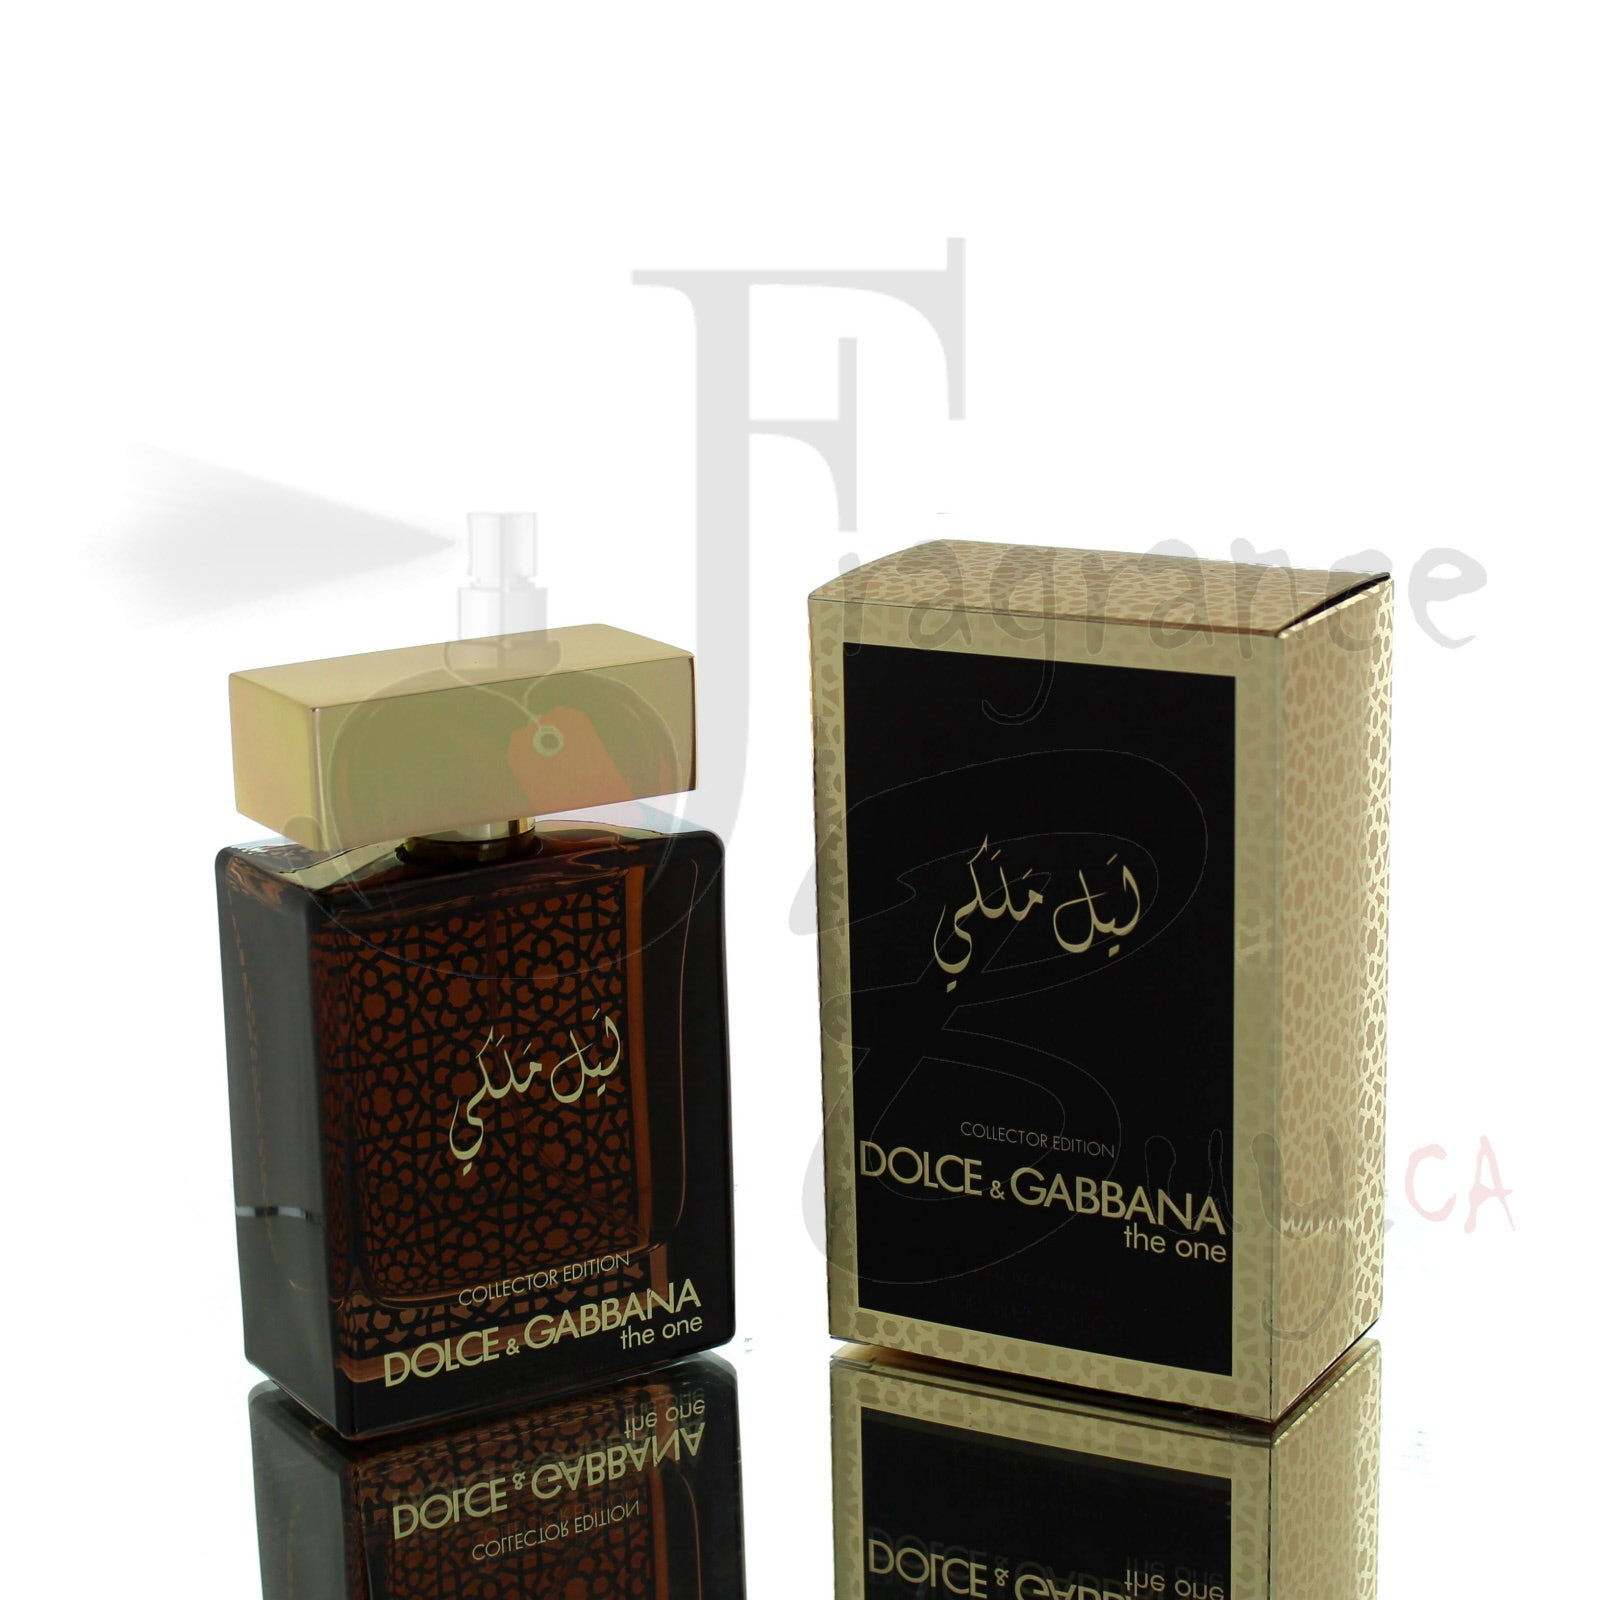 Dolce & Gabbana The One Royal Night (Collector Edition) For Man